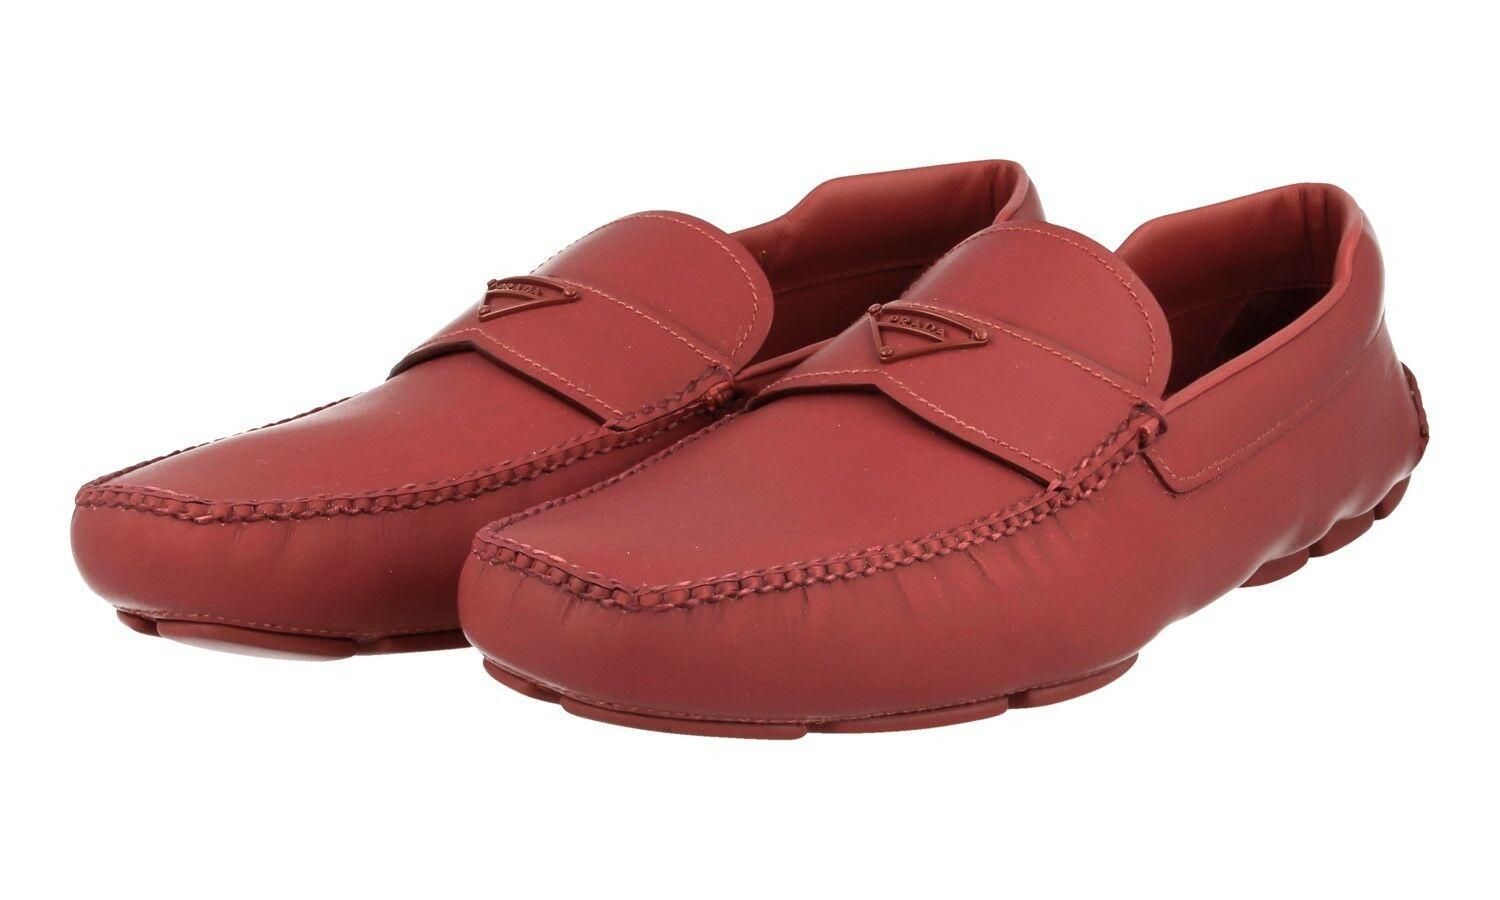 AUTHENTIC LUXURY PRADA LOAFER SHOES 2DD127 RED RUBBERISED LEATHER NEW 9 43 43,5